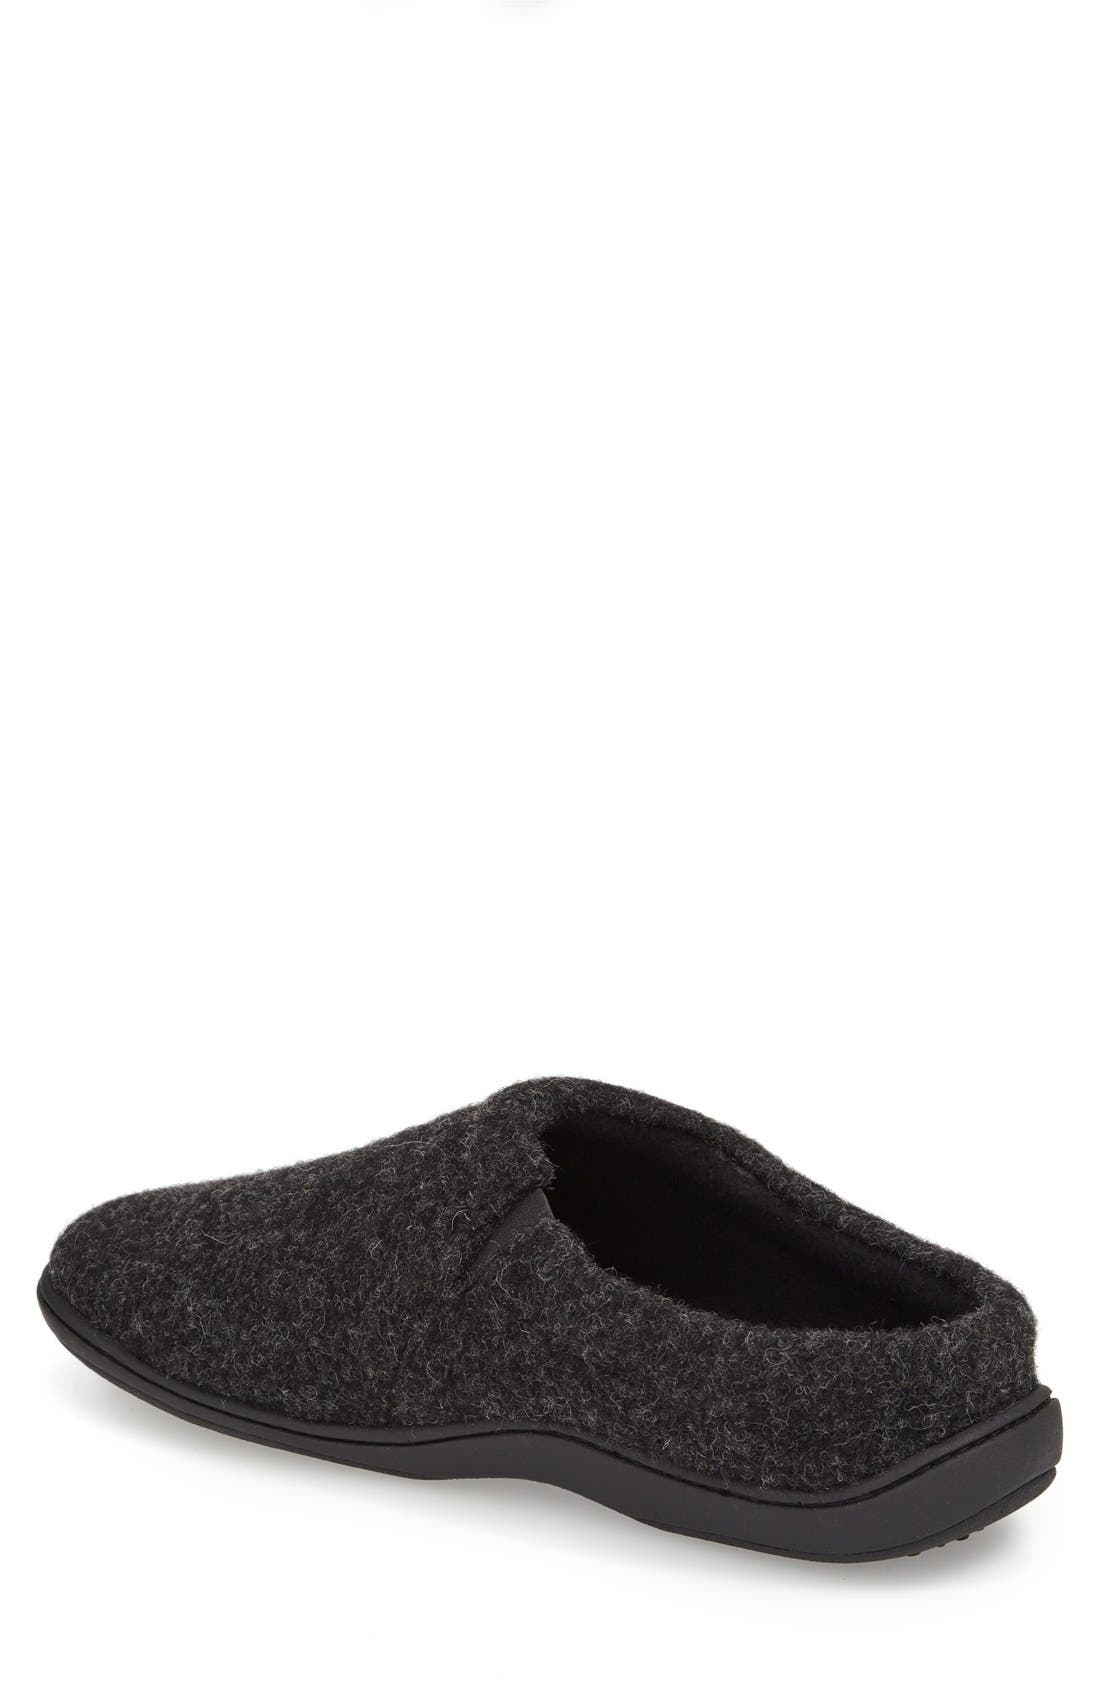 'Digby' Slipper,                             Alternate thumbnail 21, color,